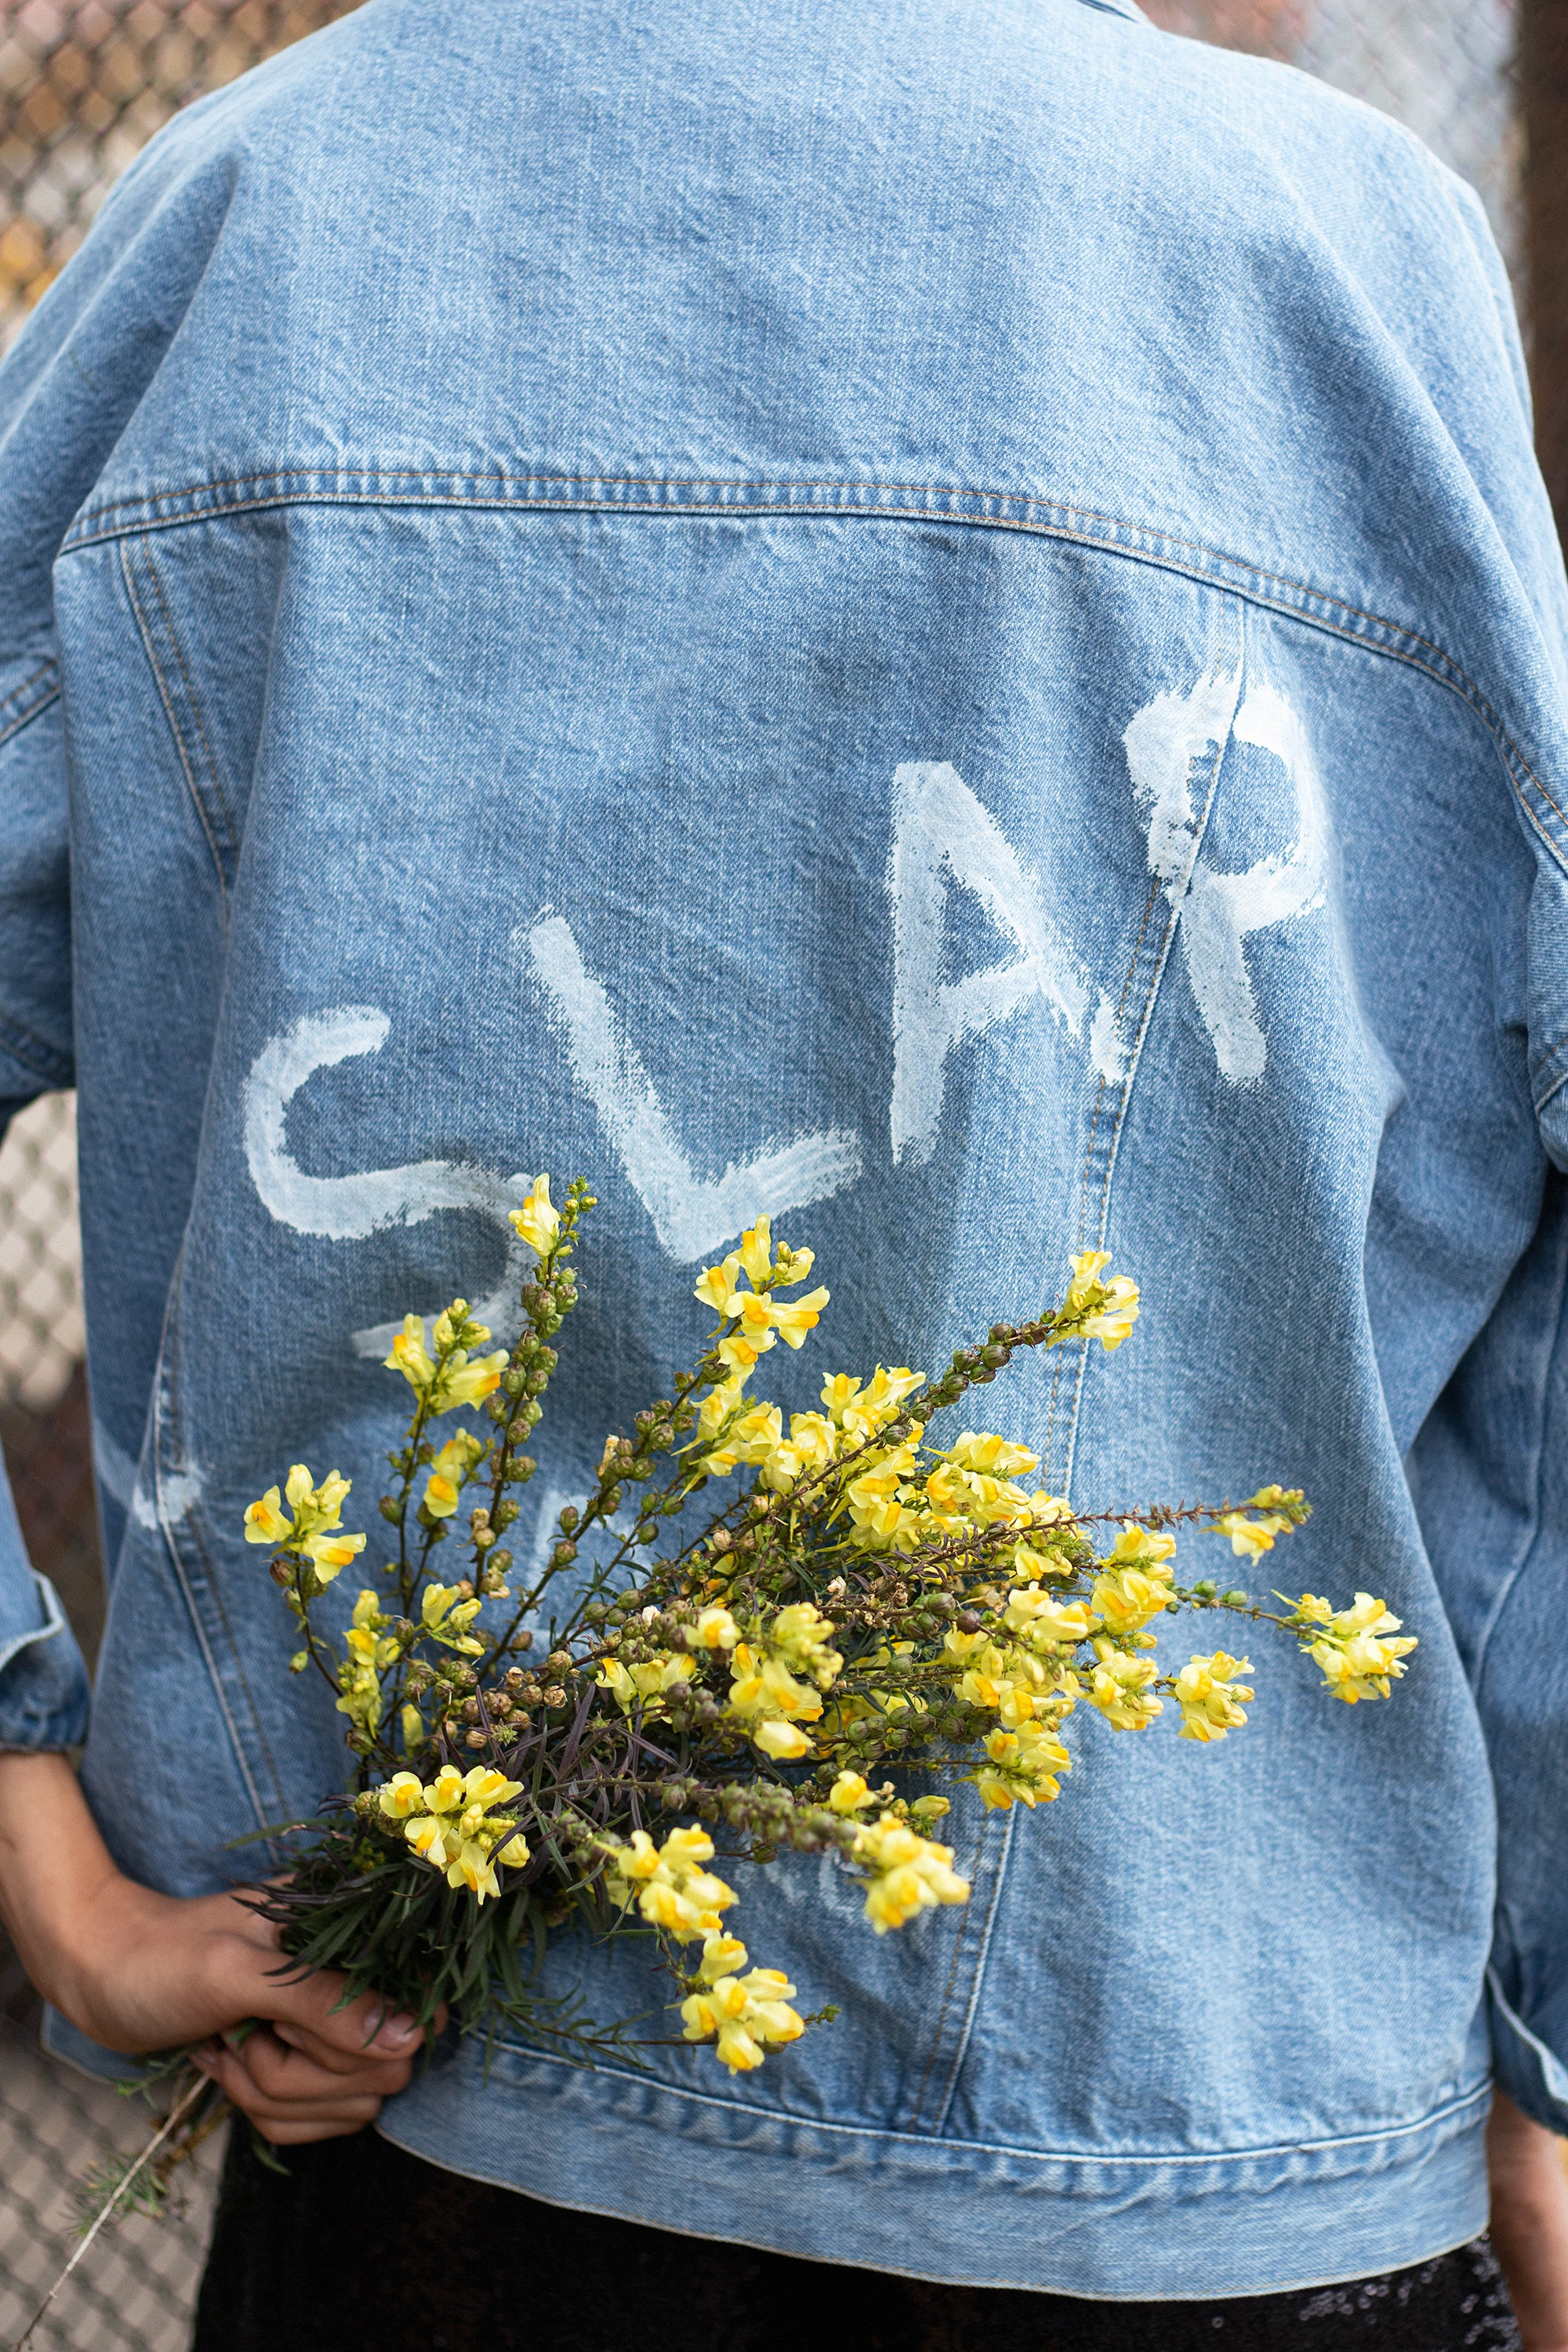 le-slap-photoshoot-light-denim-jacket-with-wording-unisex-streetstyle-photoshoot.jpg